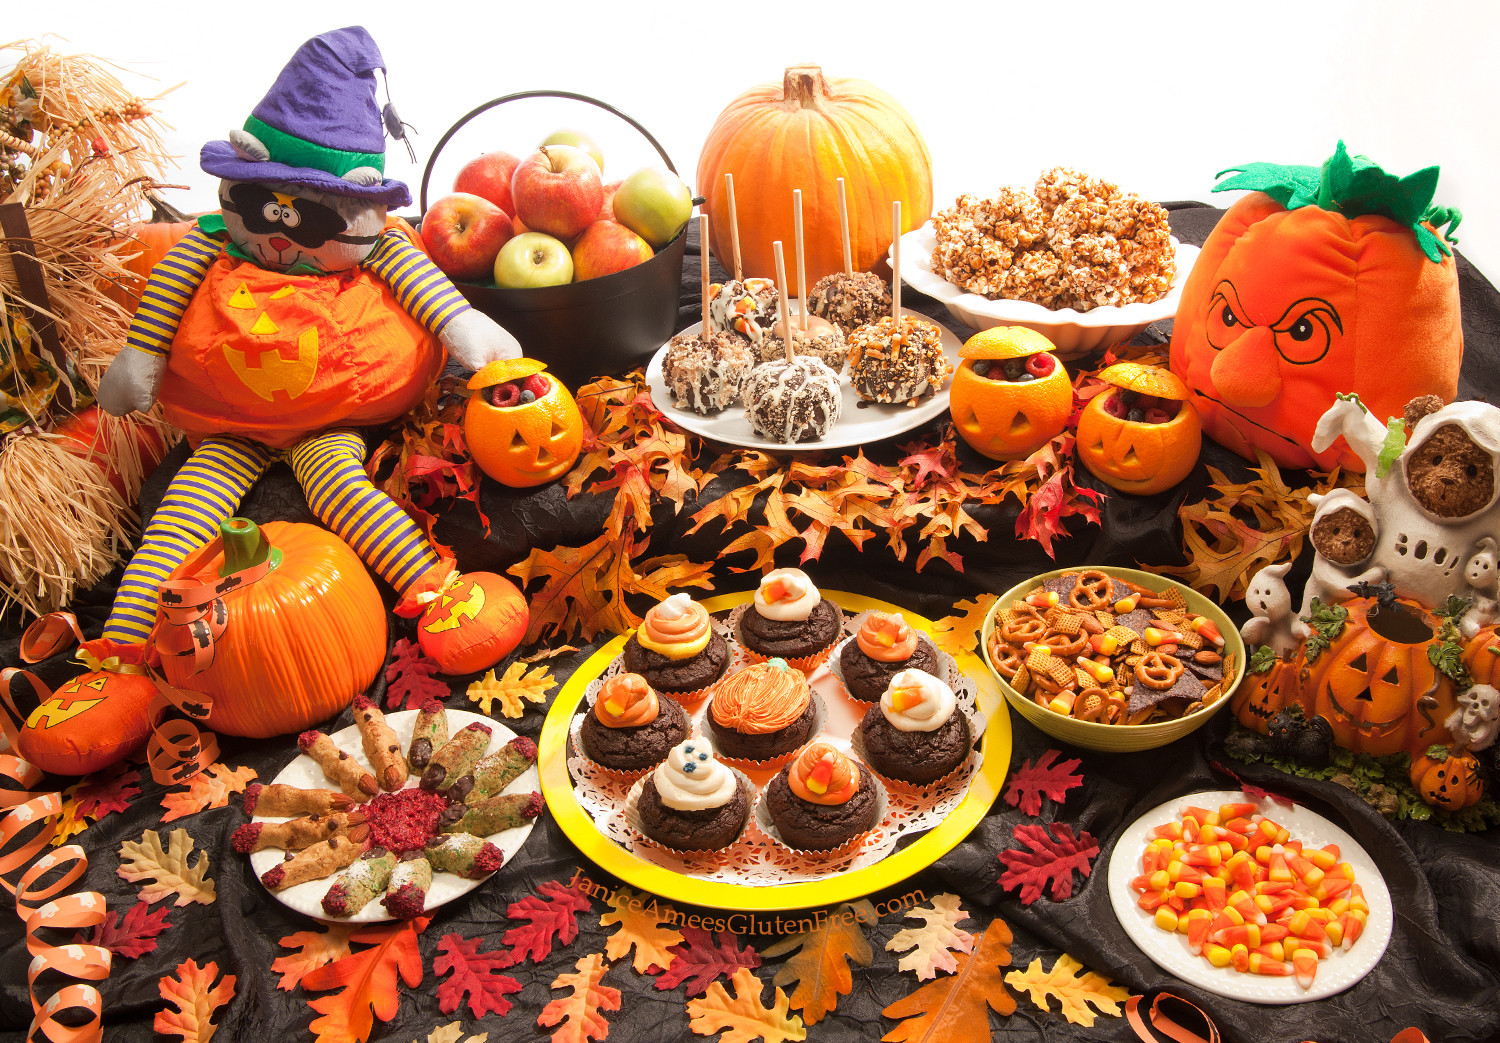 Children'S Halloween Party Food Ideas  Top 5 Festive Recipes For Your Halloween Party Top5